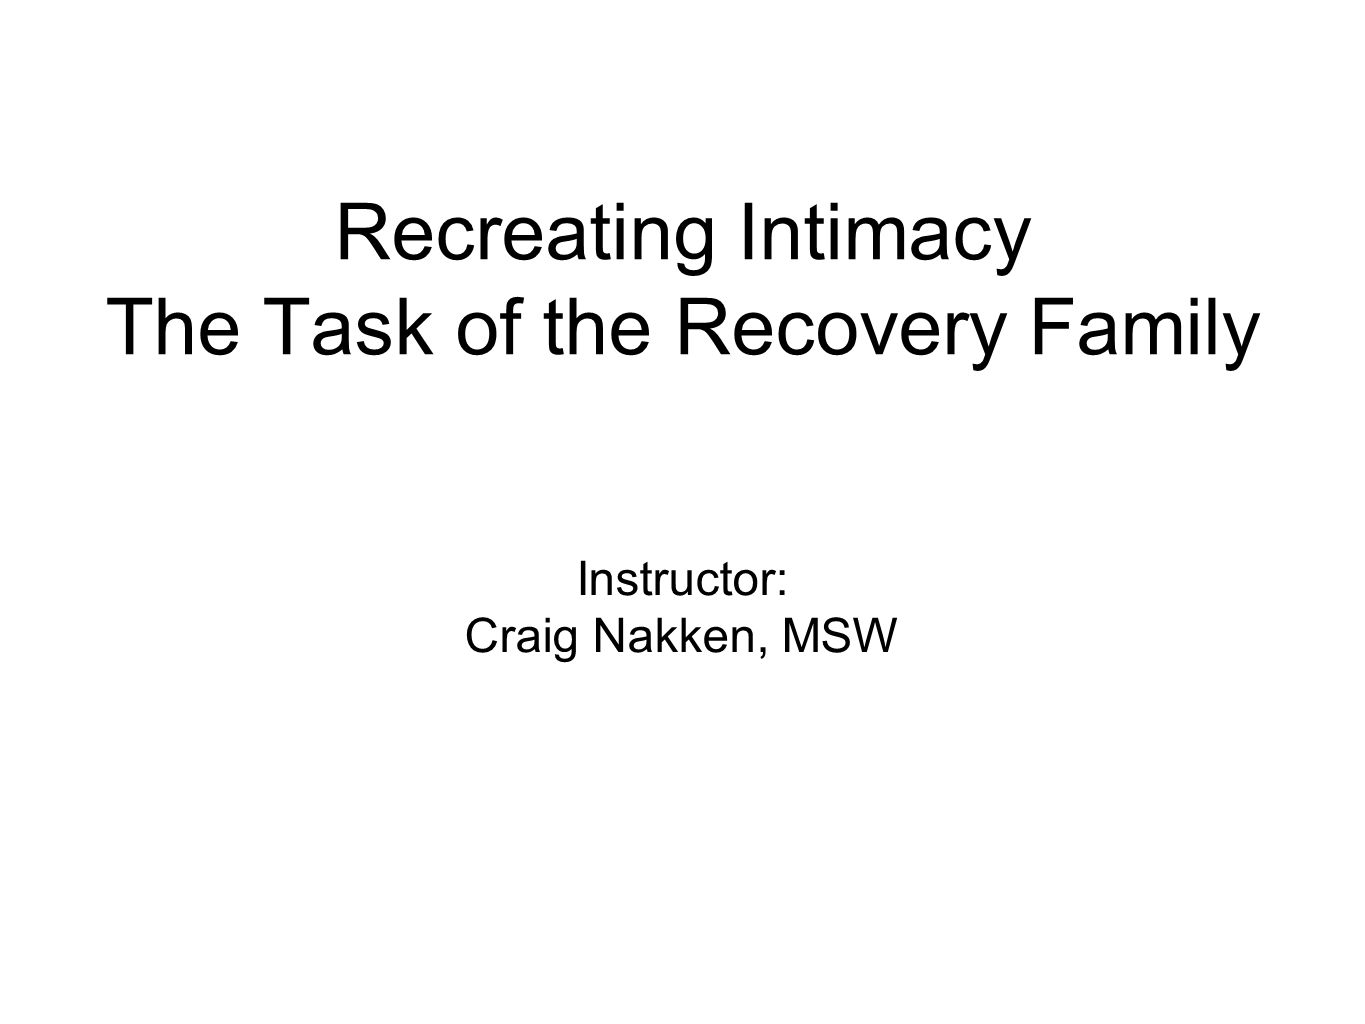 Recreating Intimacy The Task of the Recovery Family